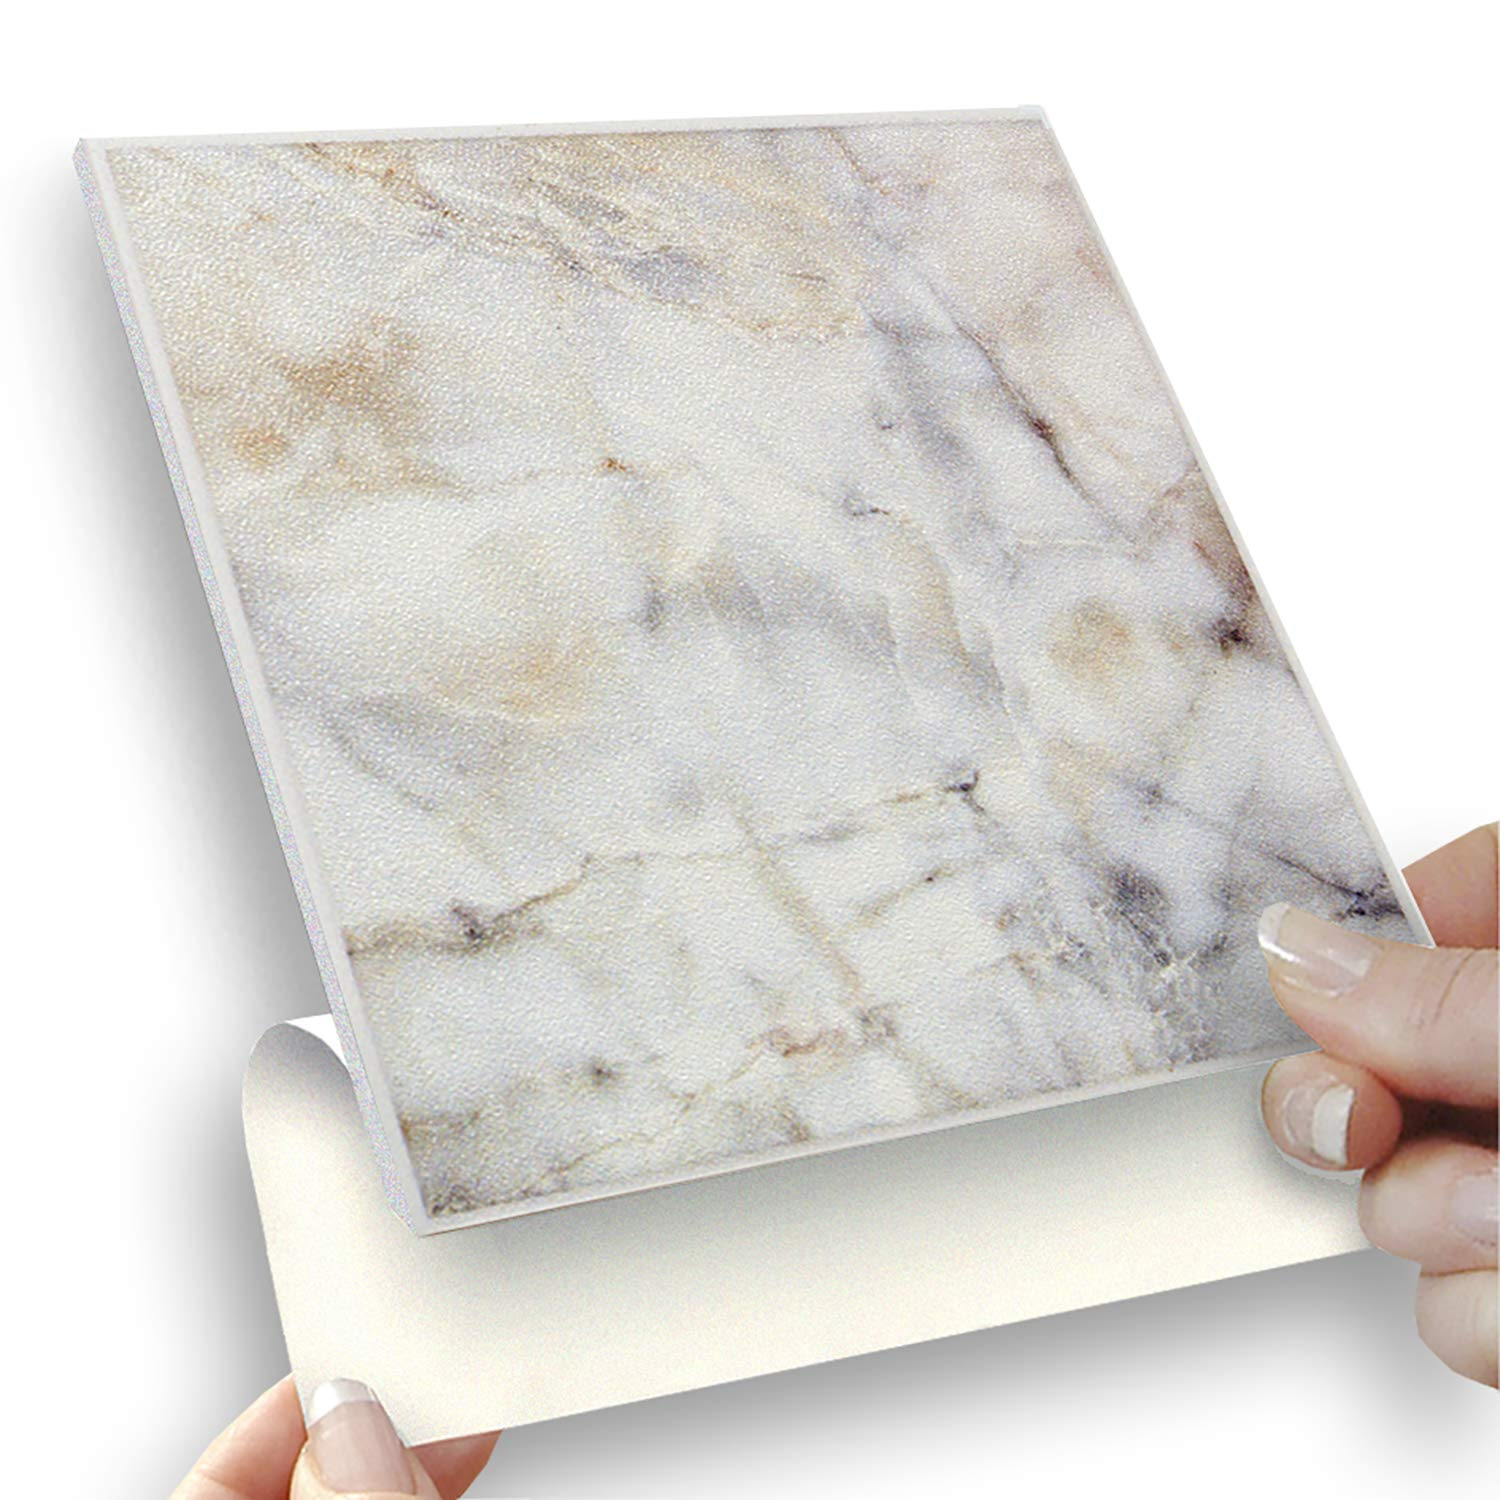 8 SELF ADHESIVE TILES: CLASSIC MARBLE - 6